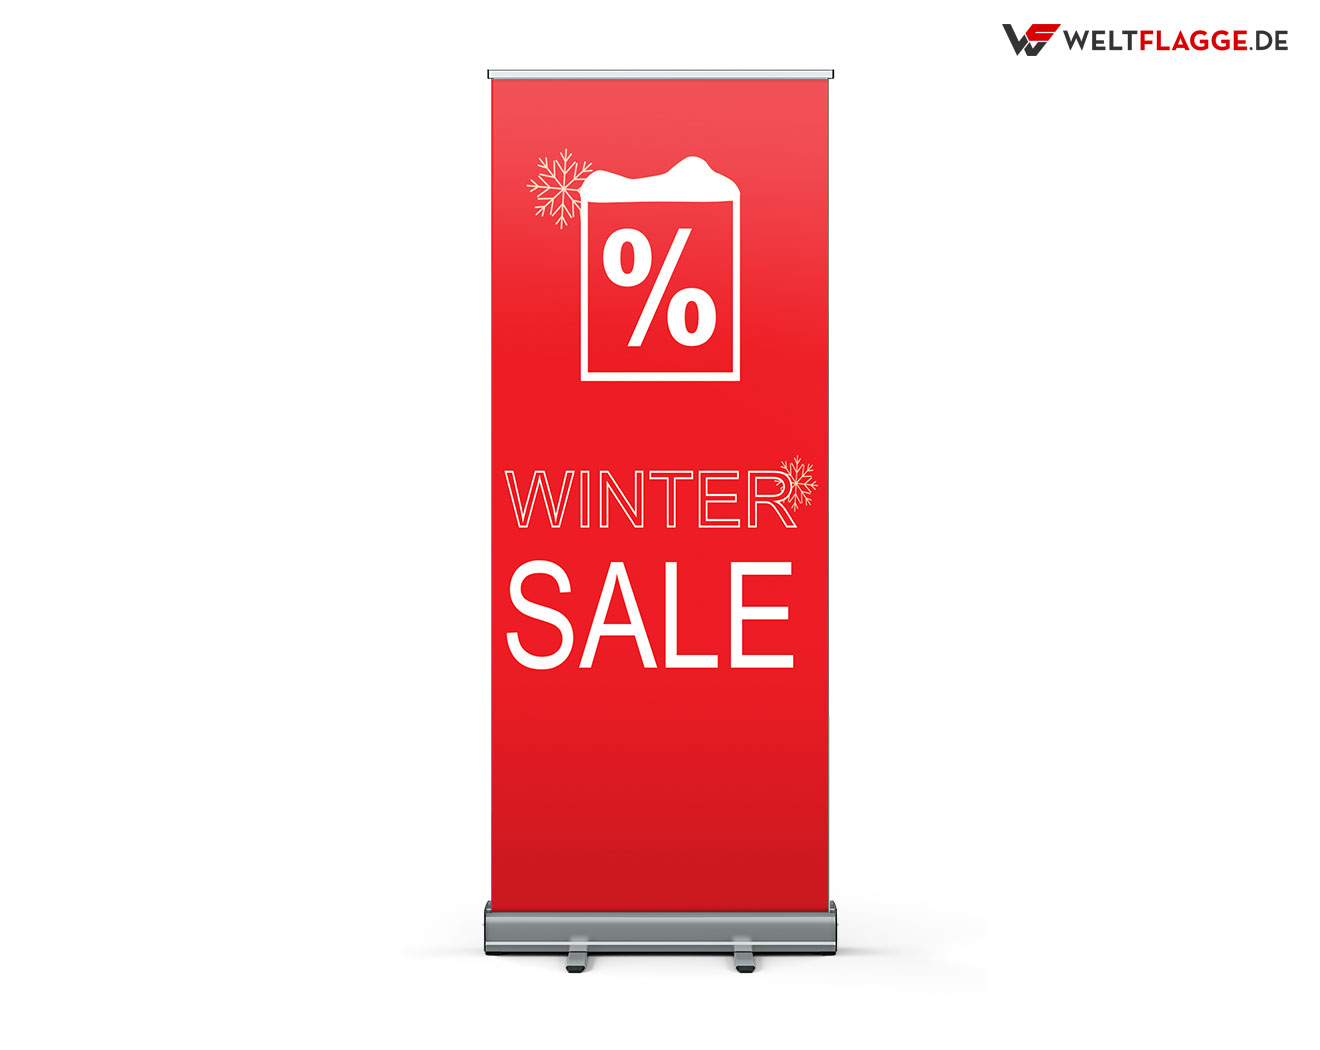 Winter SALE Roll-Up Banner bedrucken lassen